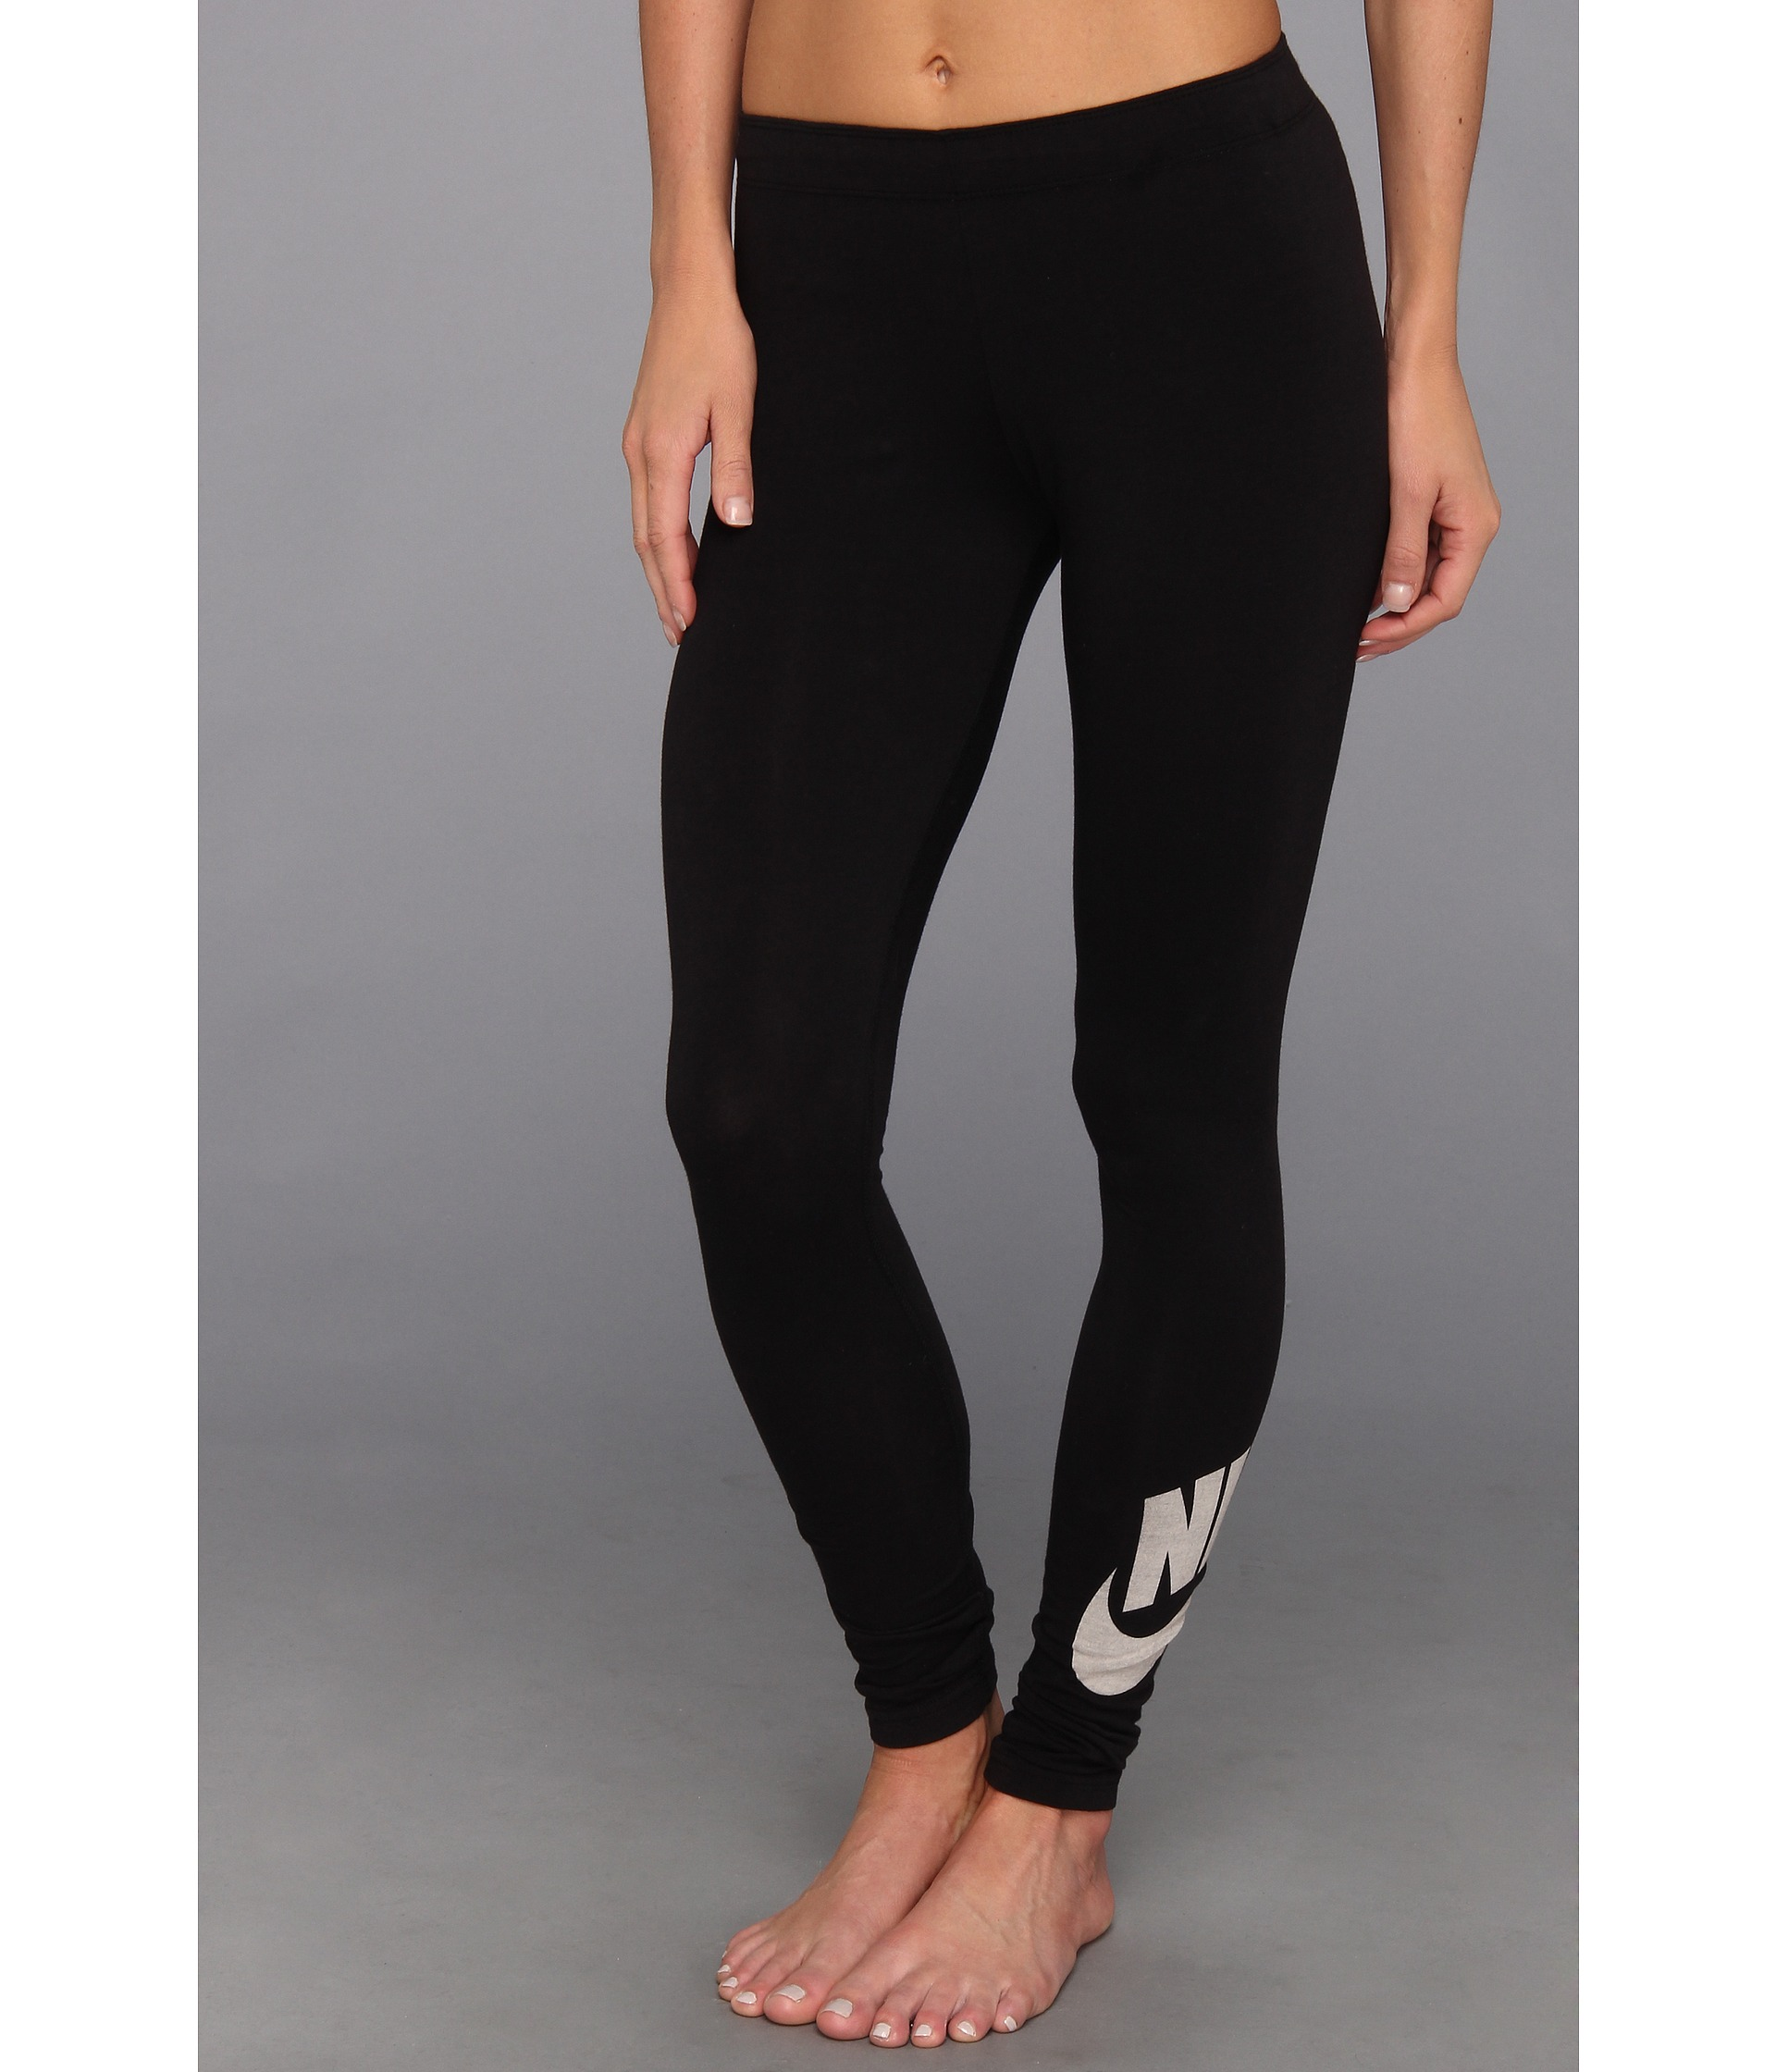 nike leg a see logo legging shipped free at zappos. Black Bedroom Furniture Sets. Home Design Ideas